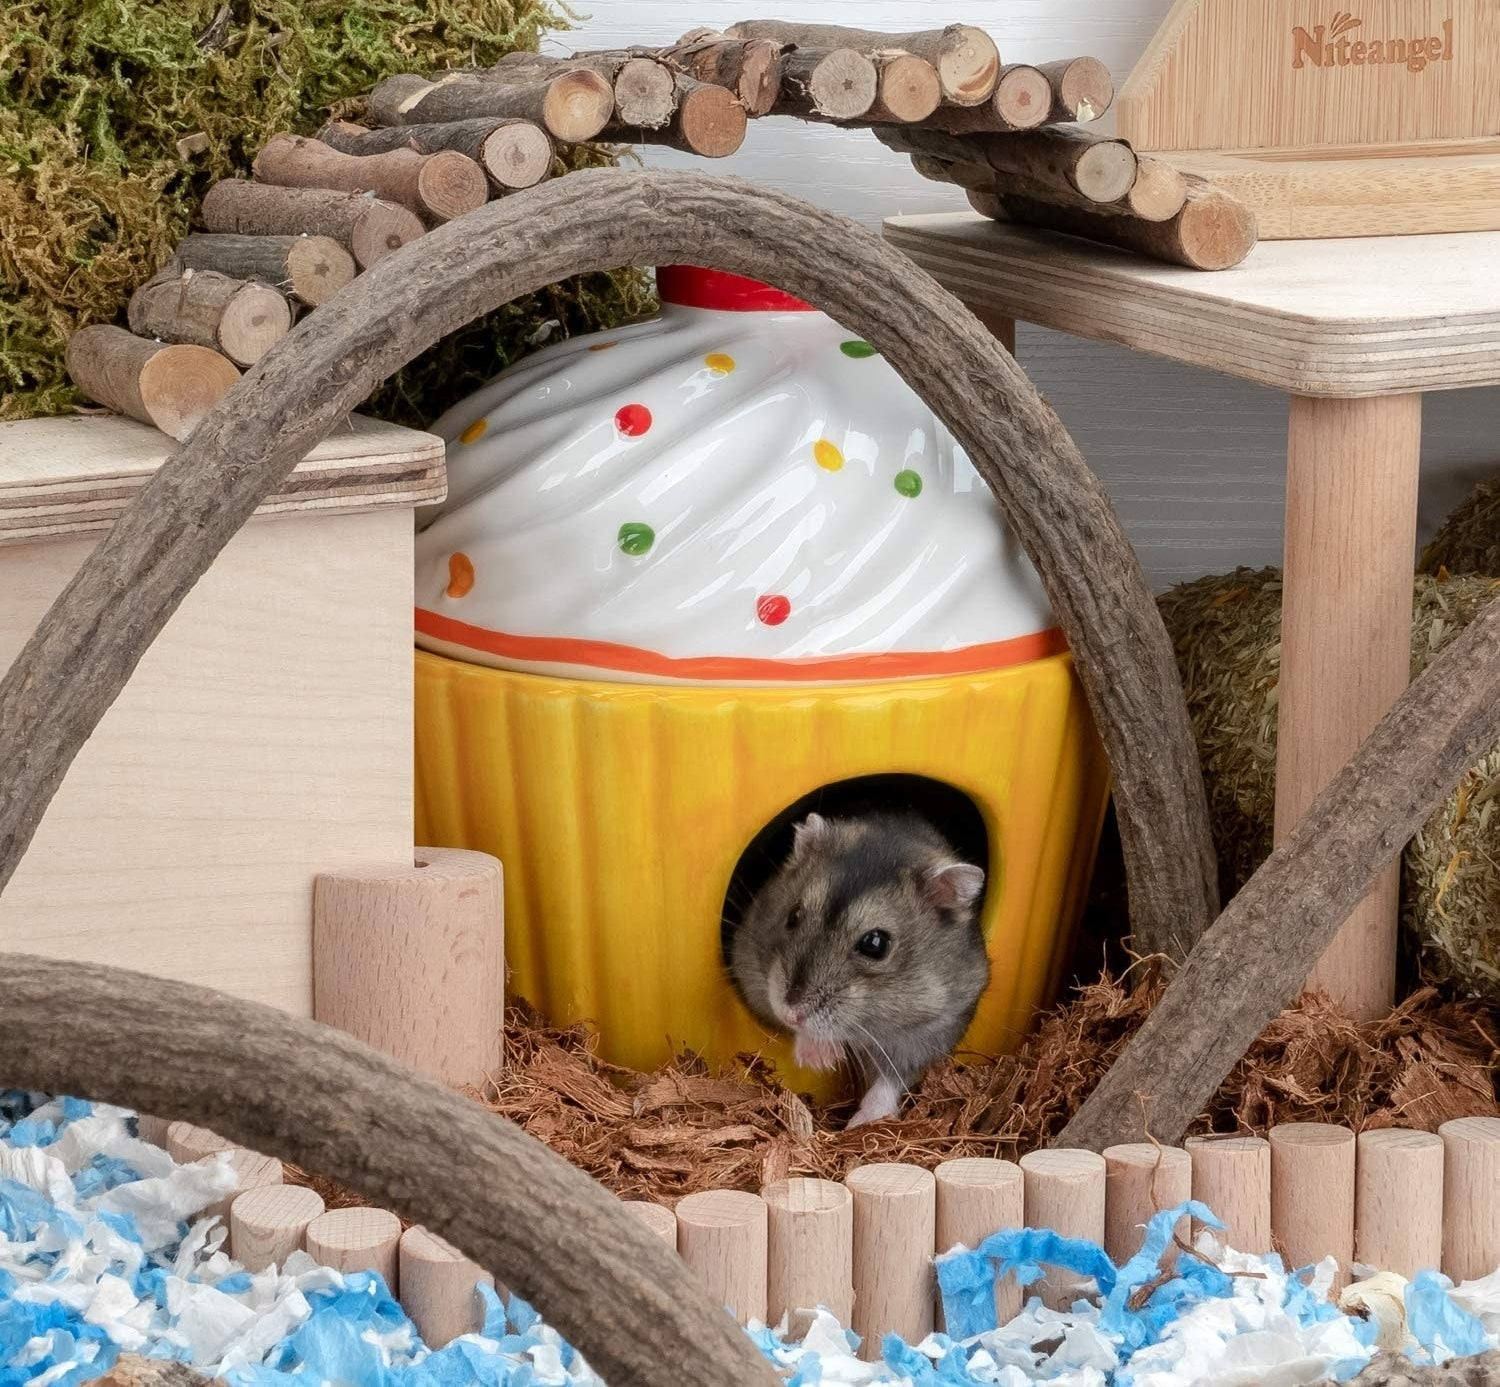 a hamster in the white and yellow cupcake enclosure